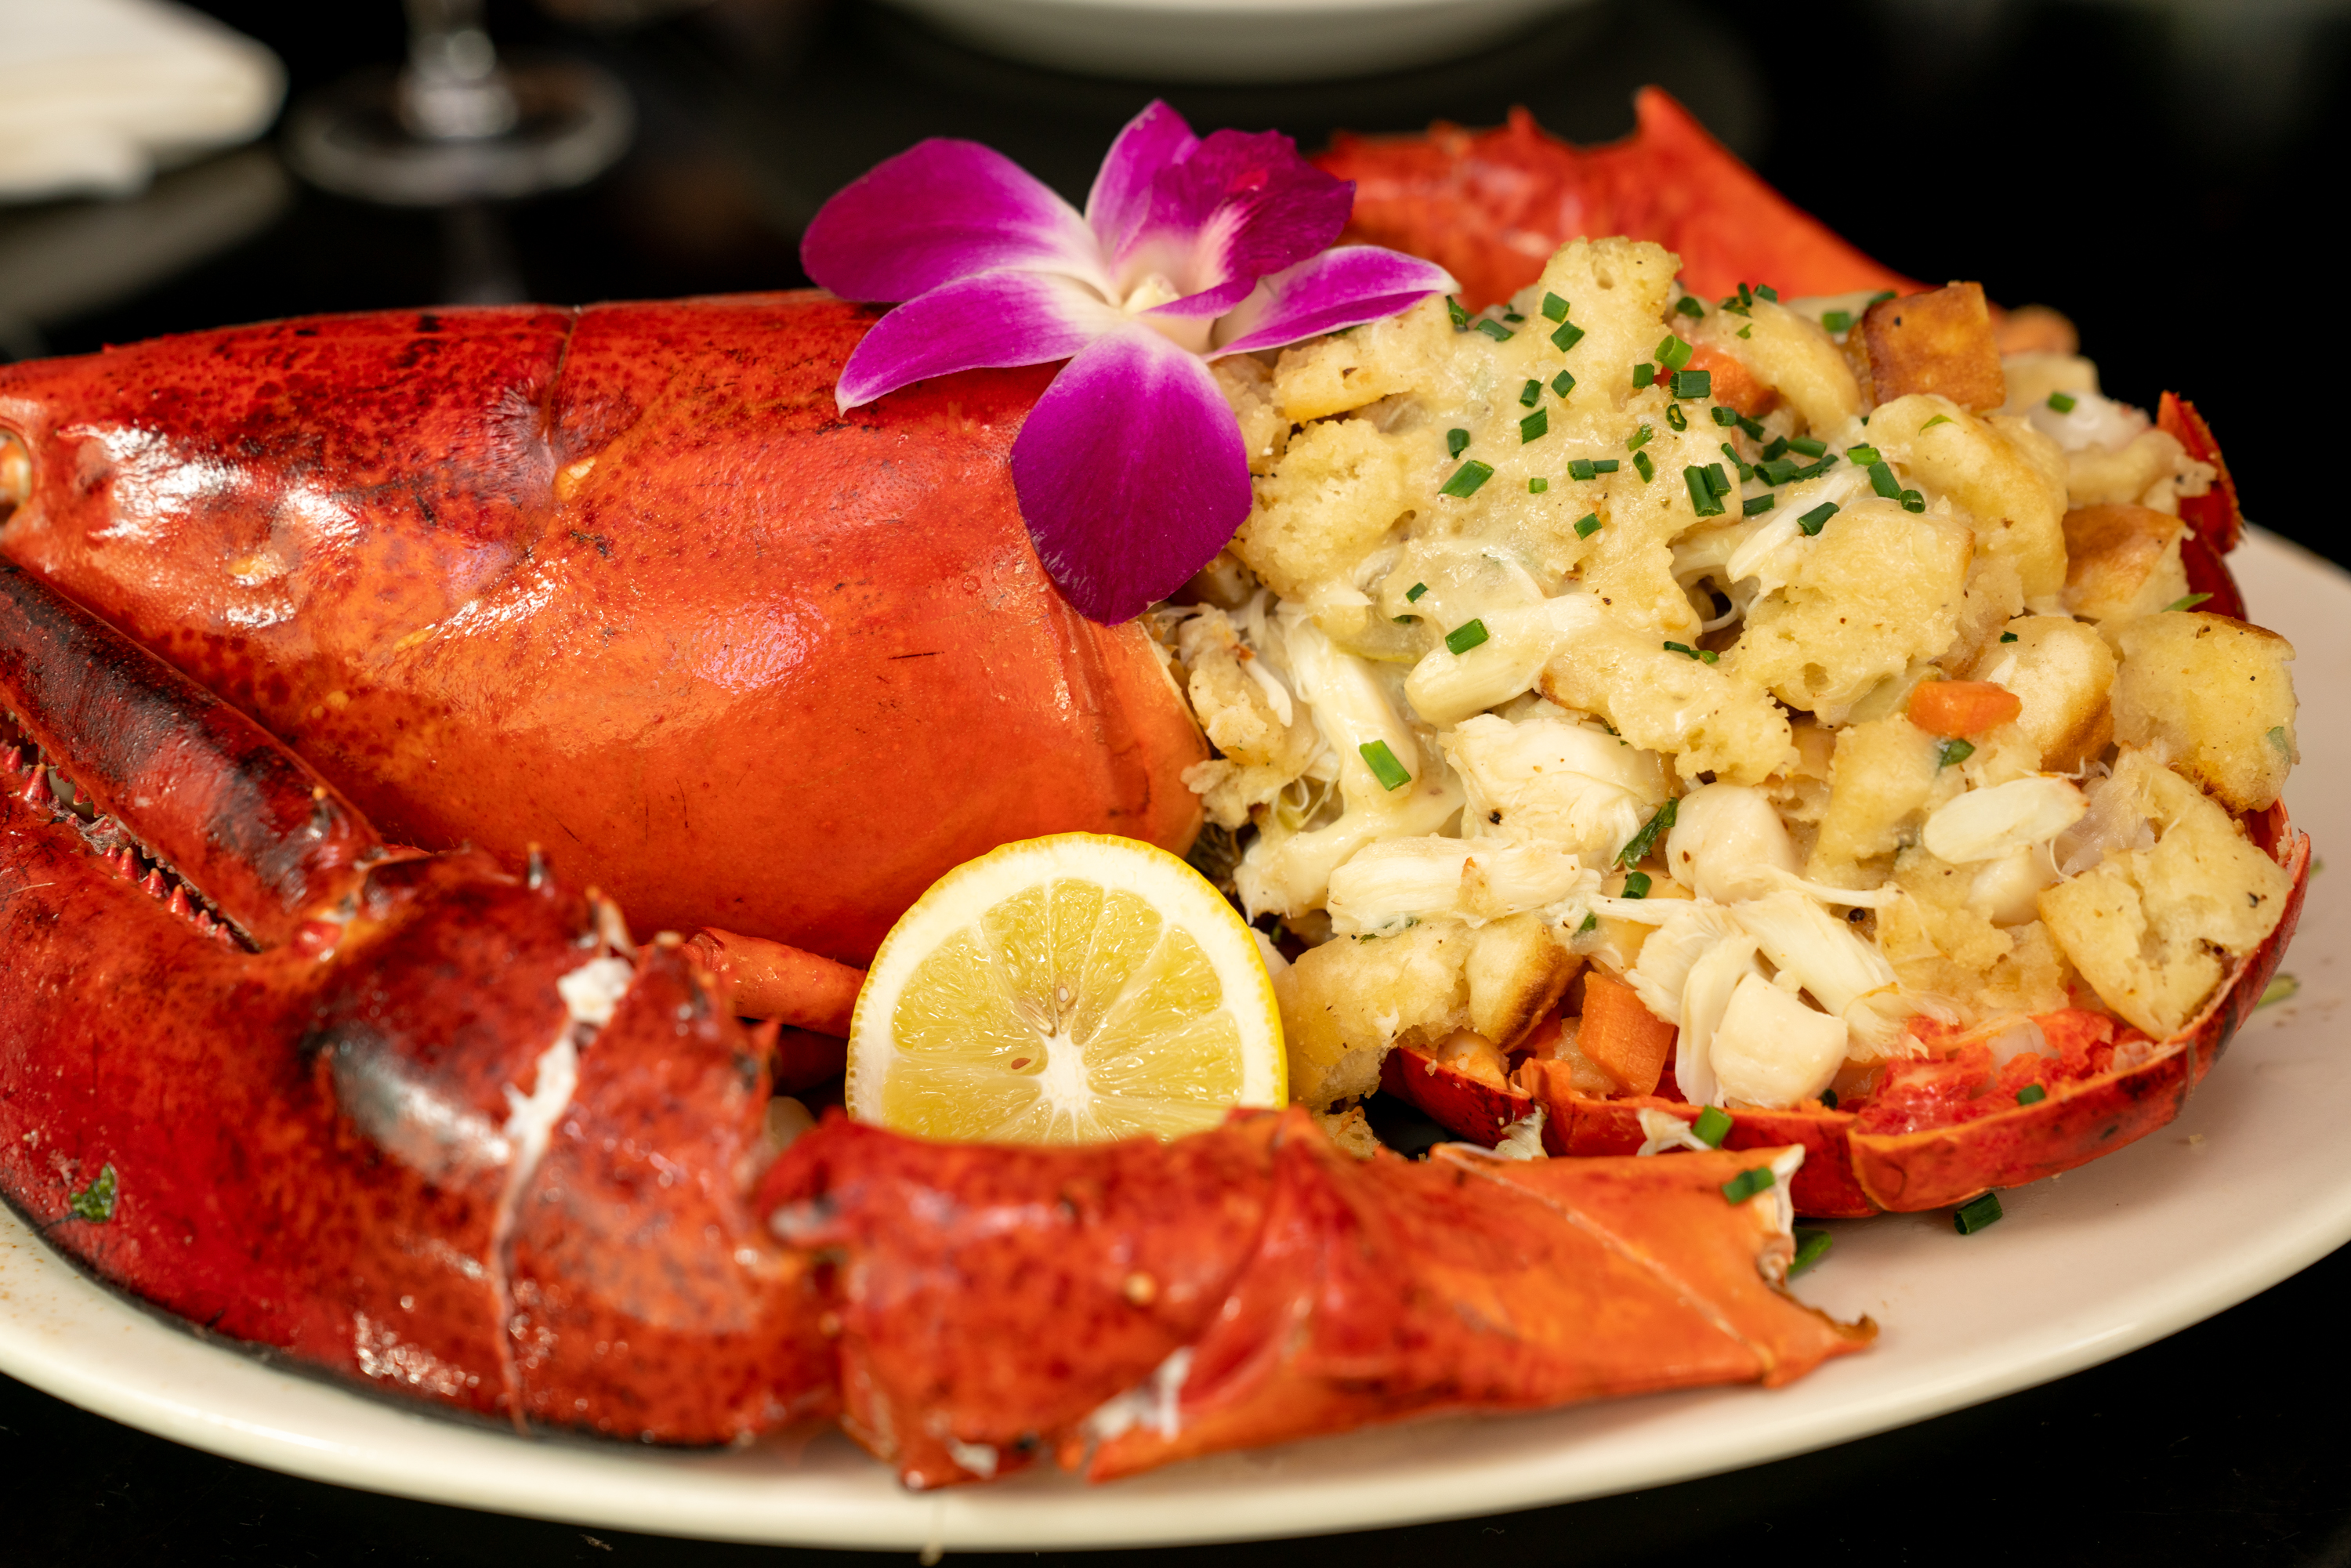 Maine Lobster Cracked and Stuffed with Jumbo Lump Crab & Bay Scallops